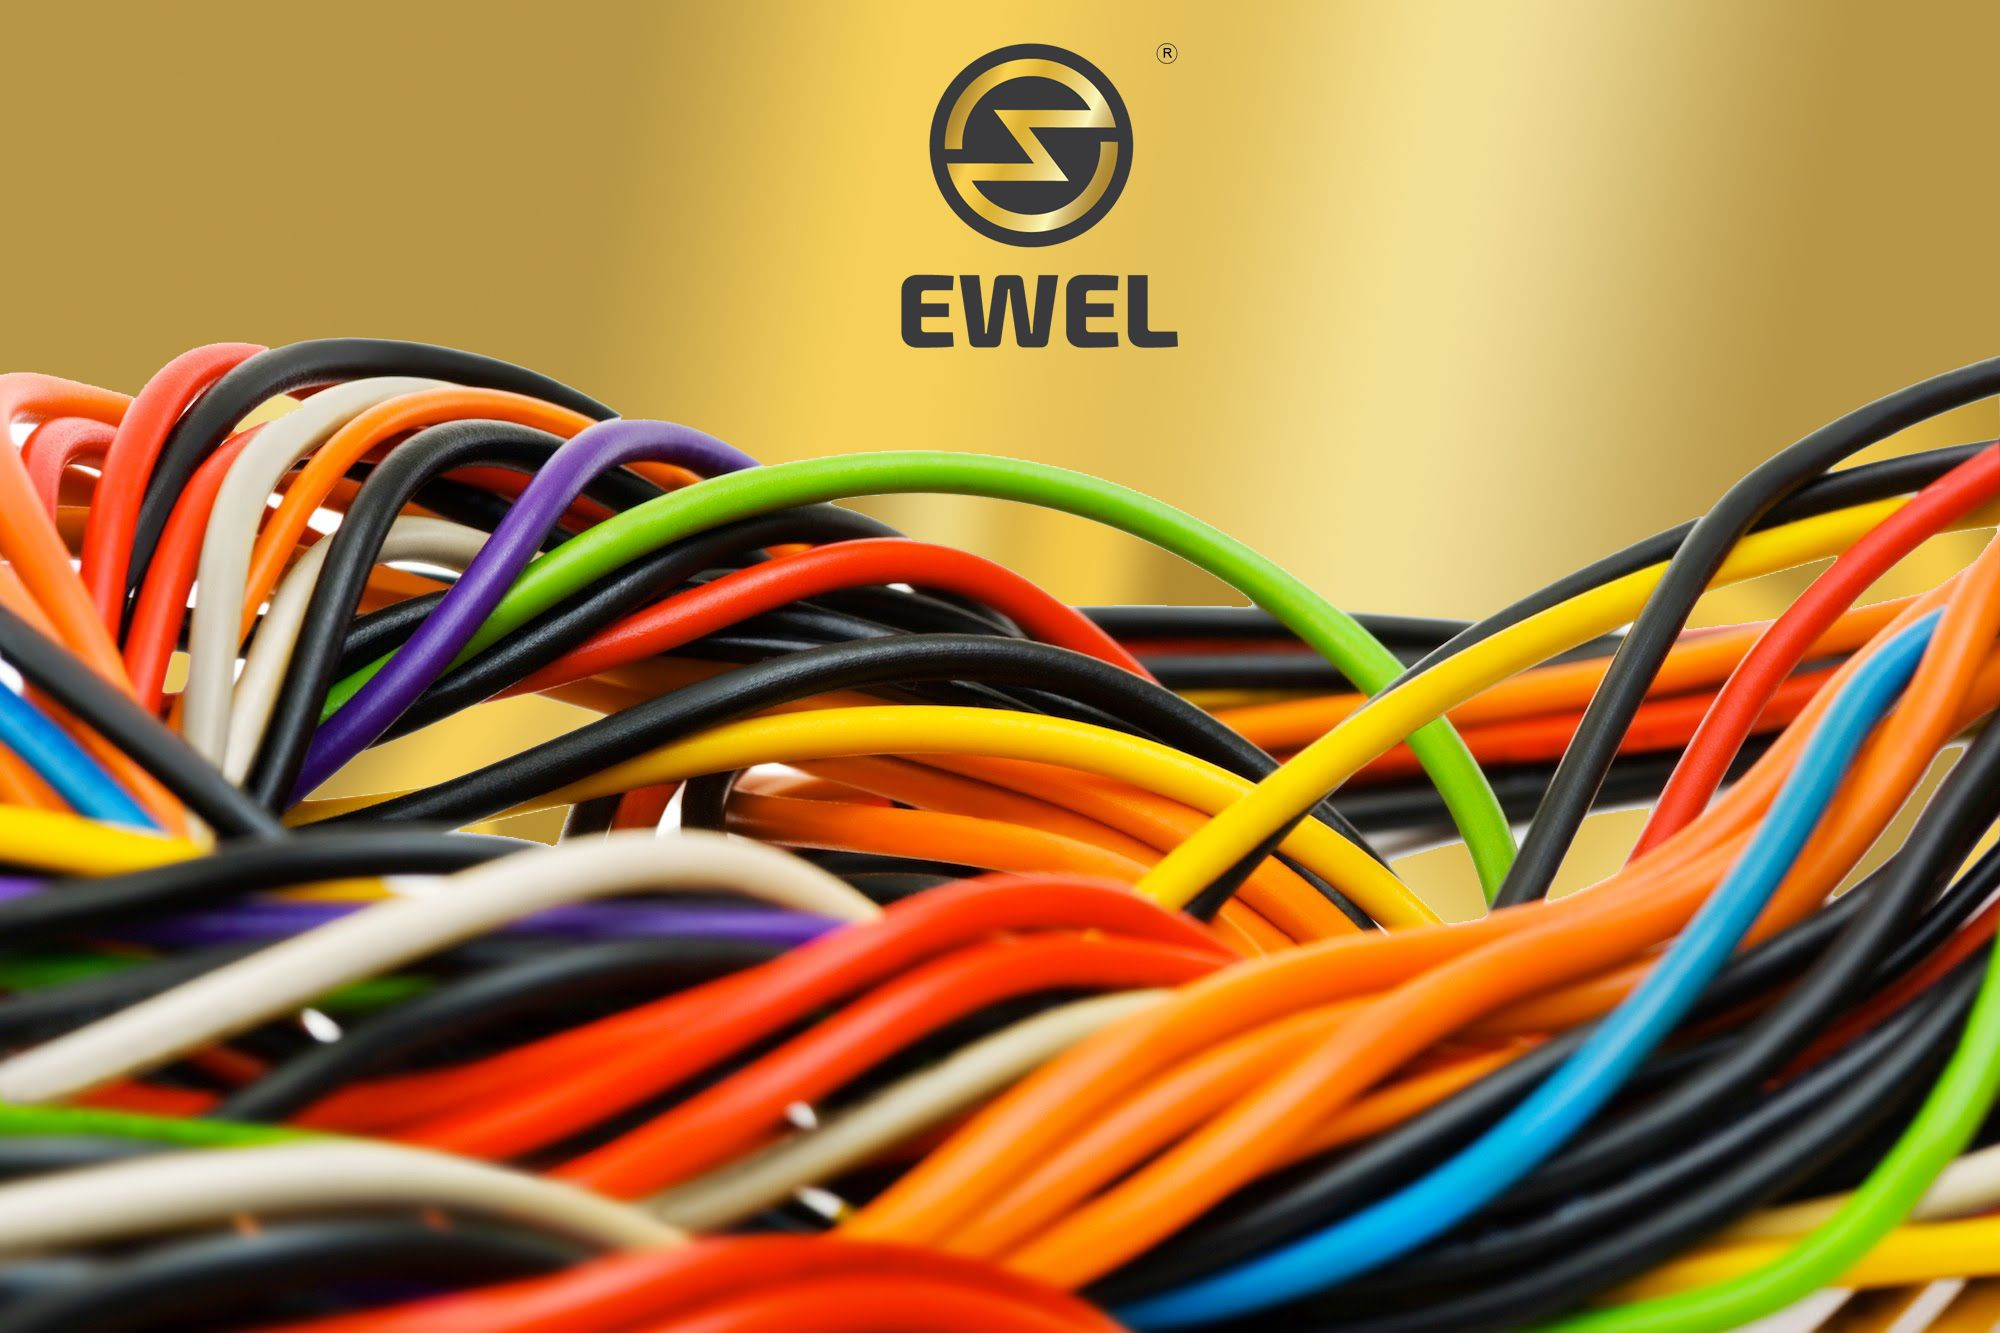 medium resolution of which is the best industrial wire products manufacturing company in india best wires and cables